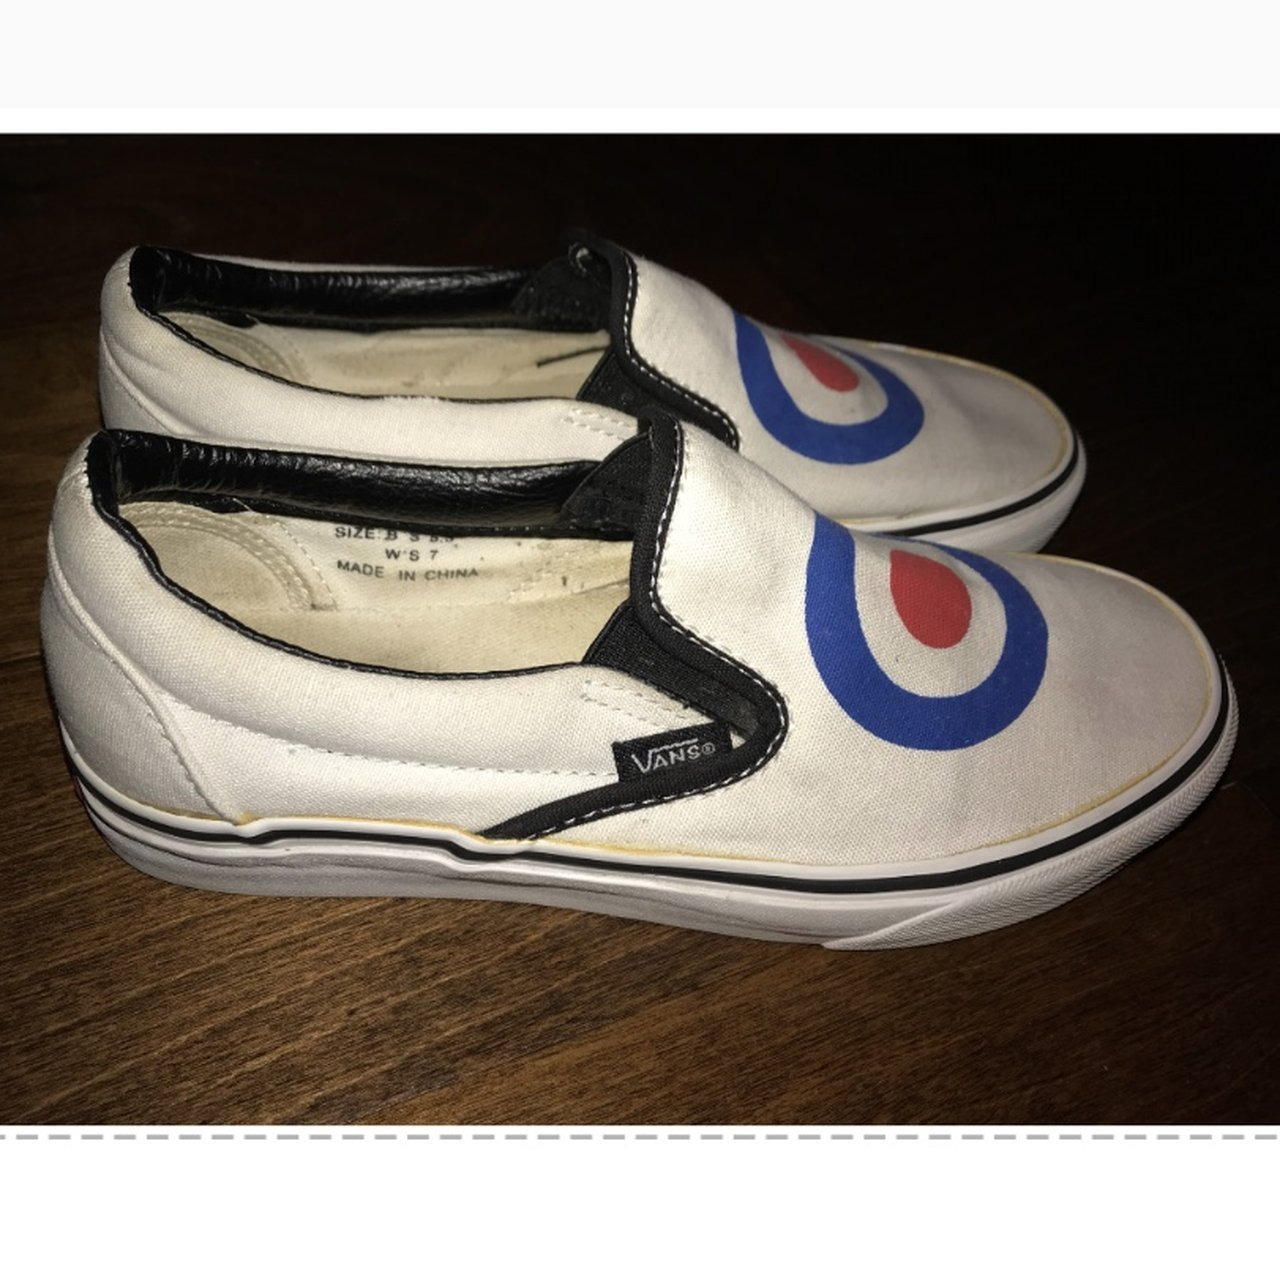 Vans white slip on shoes with archery